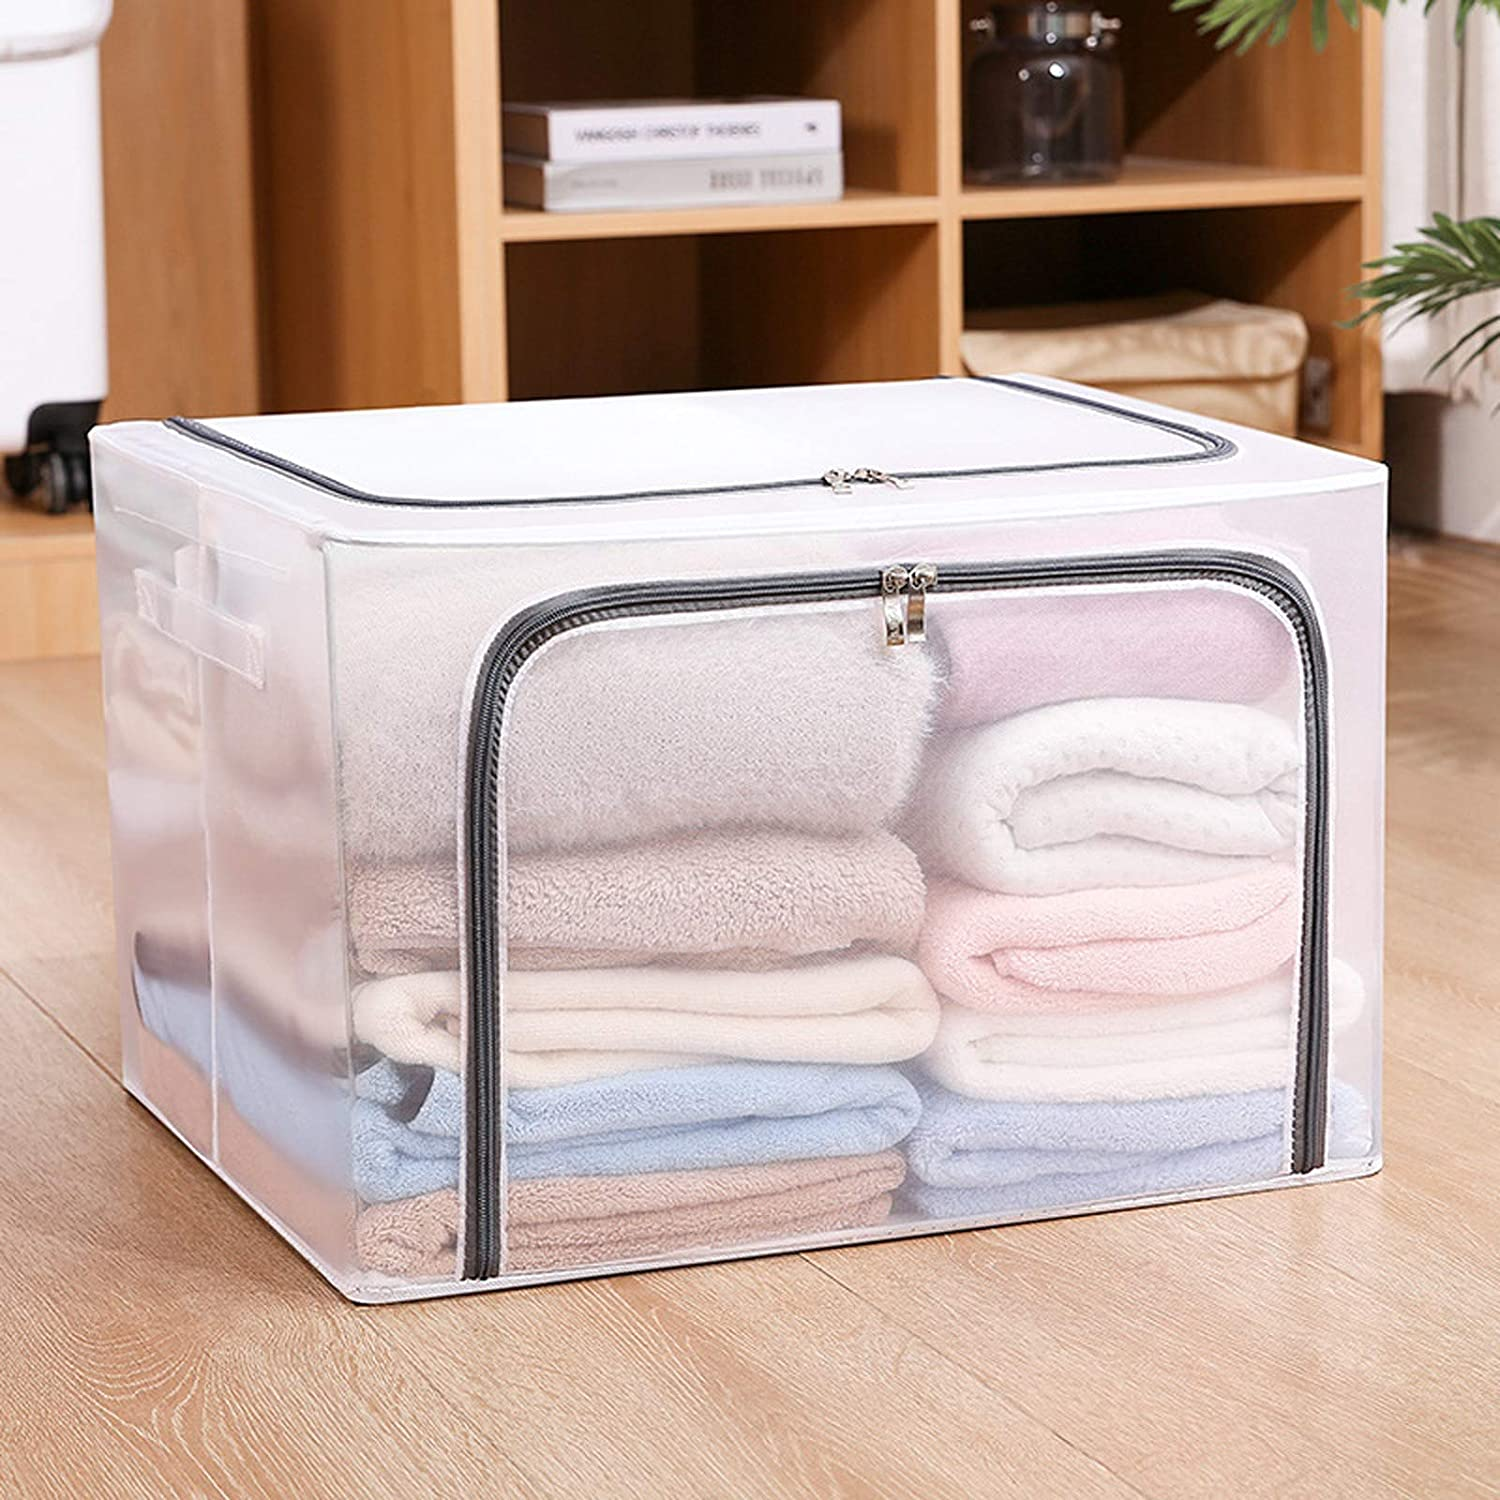 WLA Clothes Storage Challenge the lowest price of Japan Box Home Fabric Max 74% OFF Clothing Bag Transparen Toy